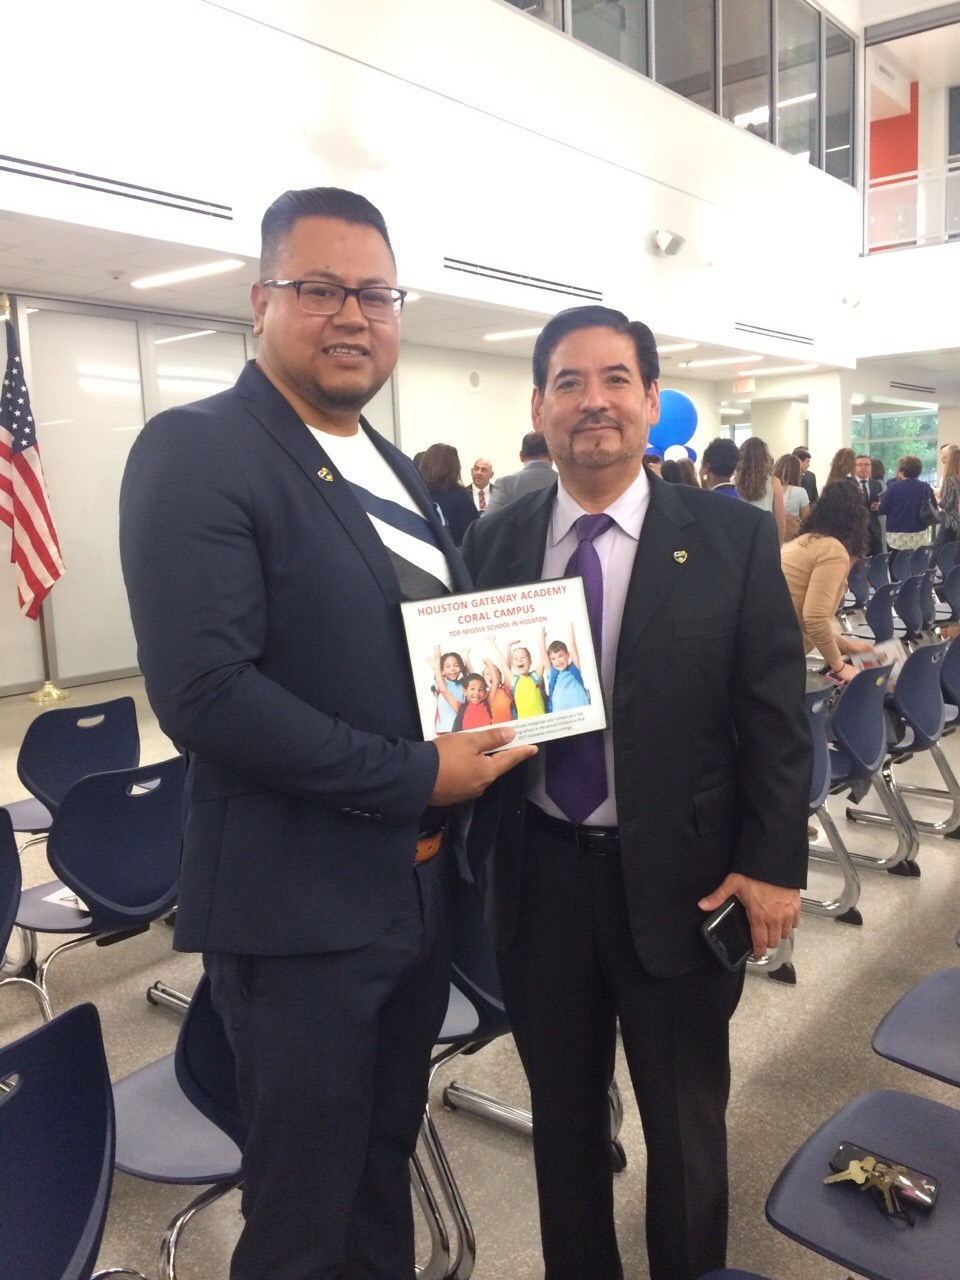 Mr. Garza and Mr. Arroyo received  Top Middle School in Houston Award